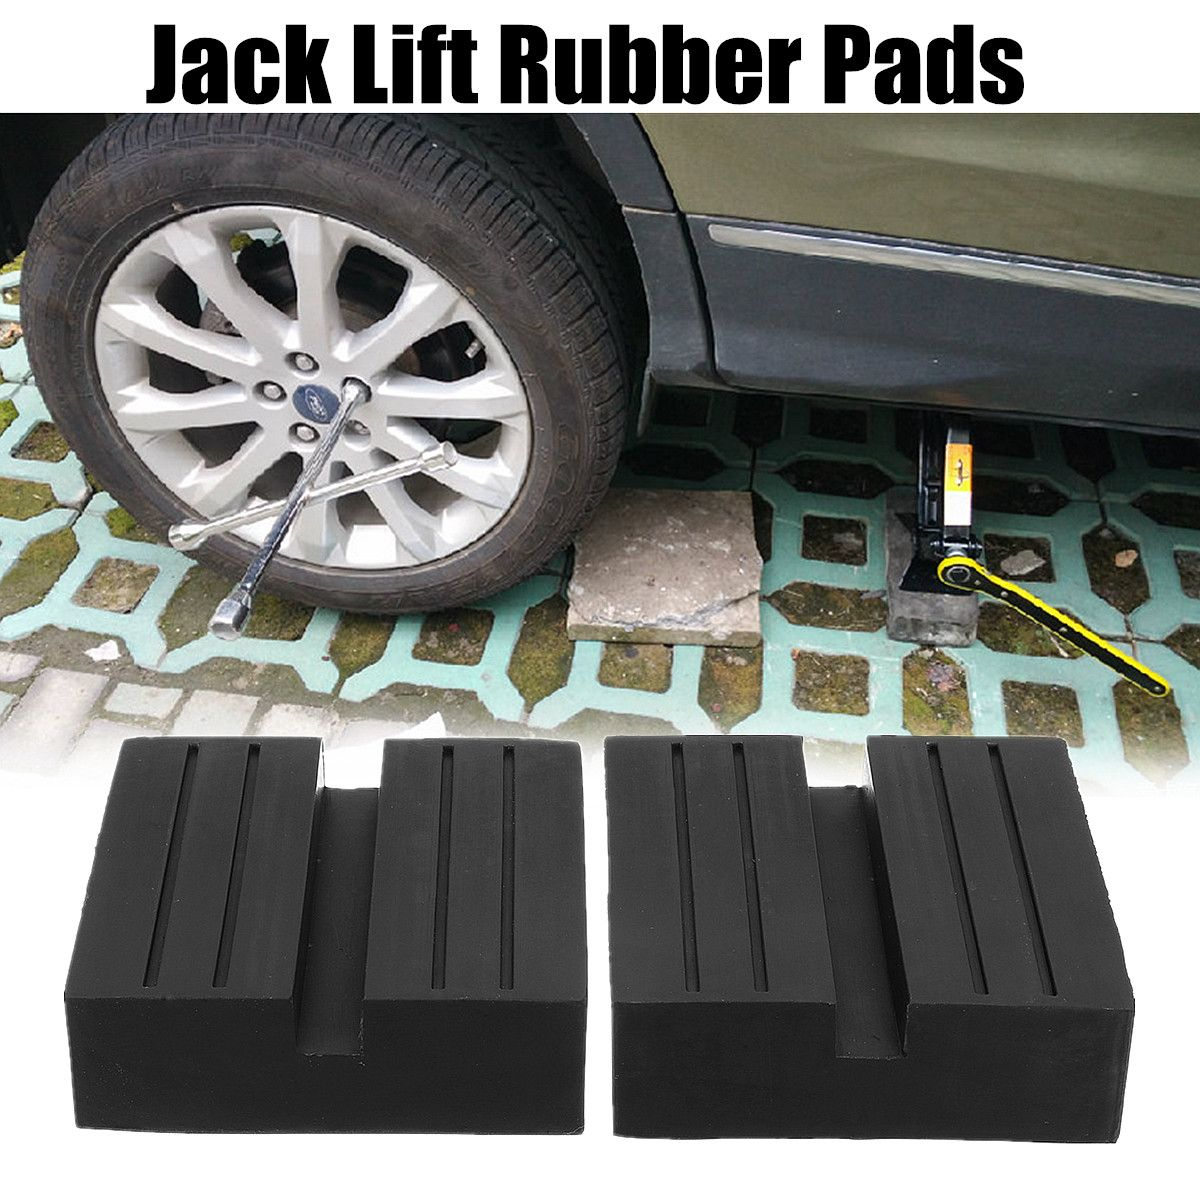 Universal 2Pcs 5cm Slotted Frame Rail Floor Jack Guard Adapter Lift Rubber Pads